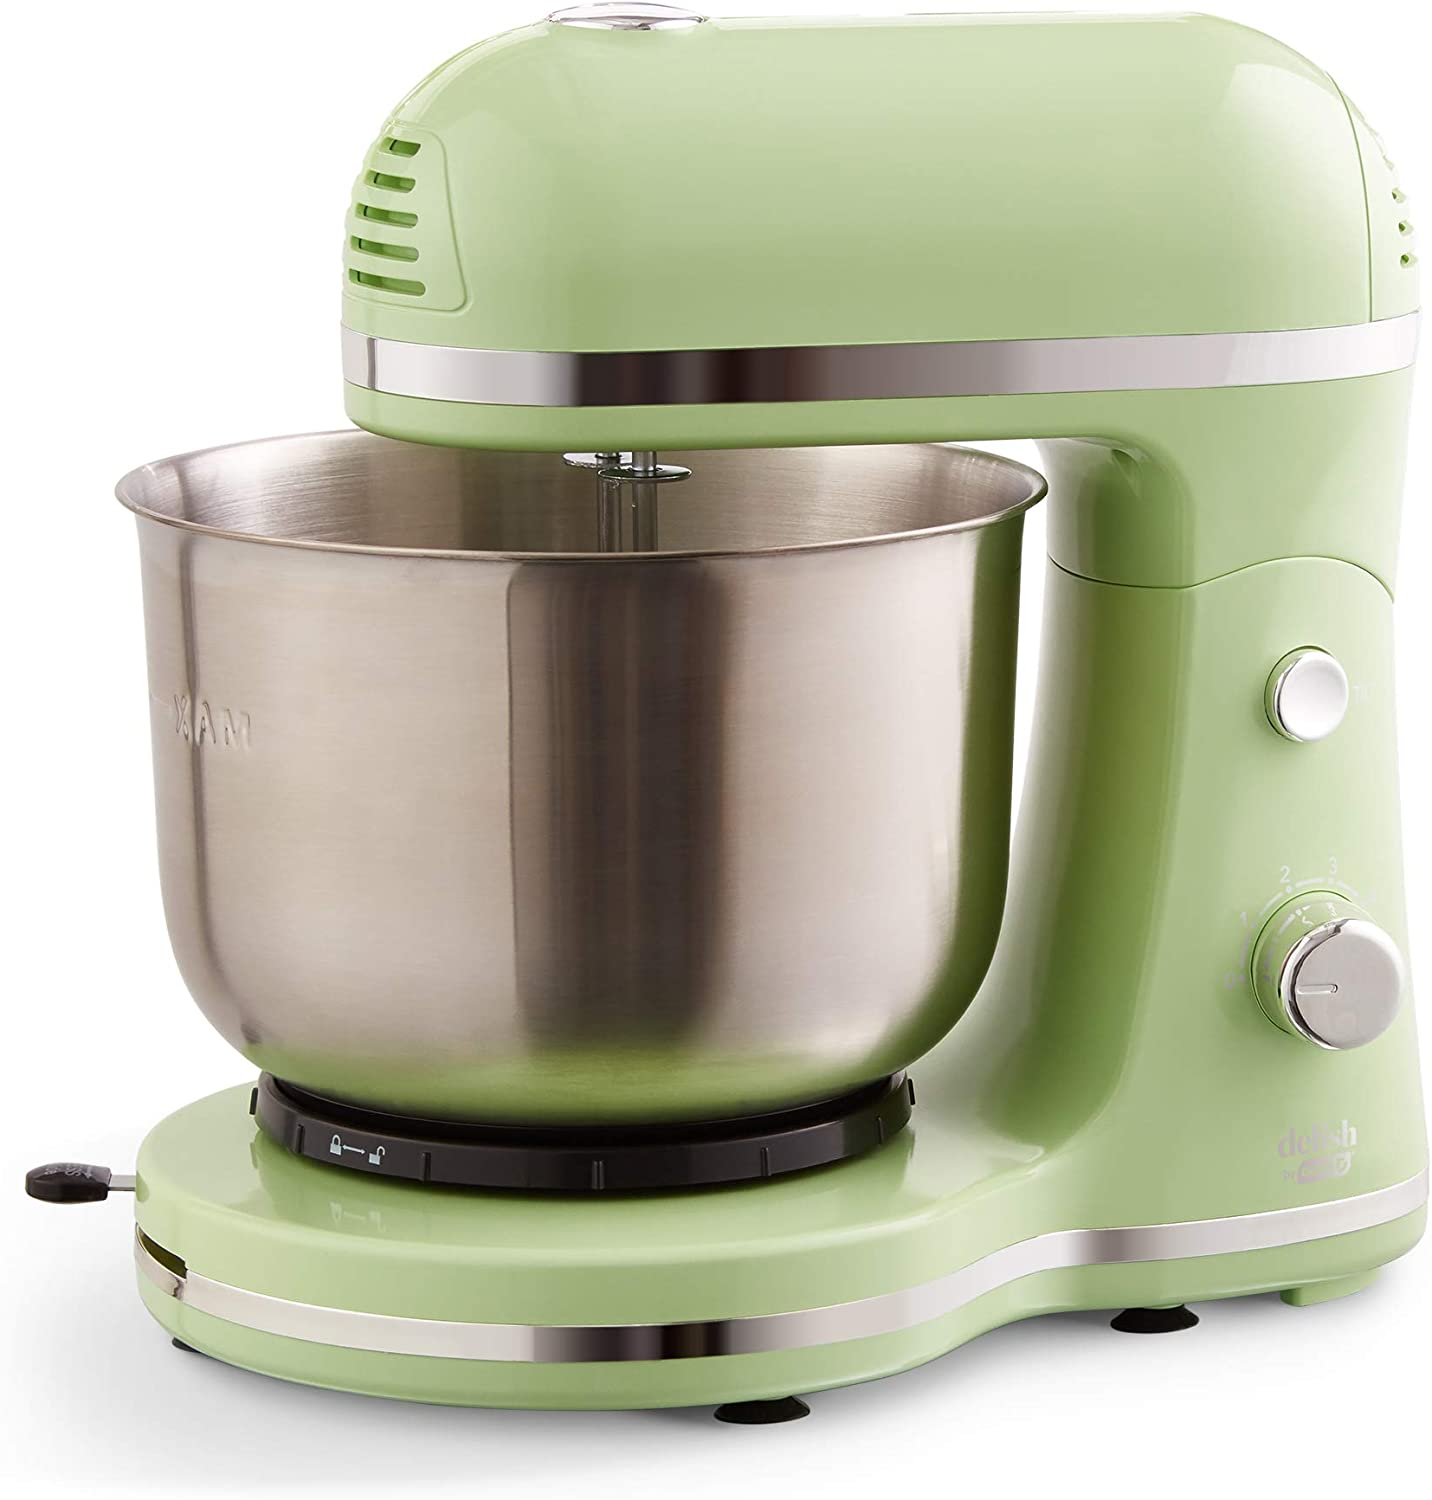 Delish by DASH Compact Stand Mixer 3.5 Quart with Beaters & Dough Hooks Included - Green (DCSM350GBGR02)